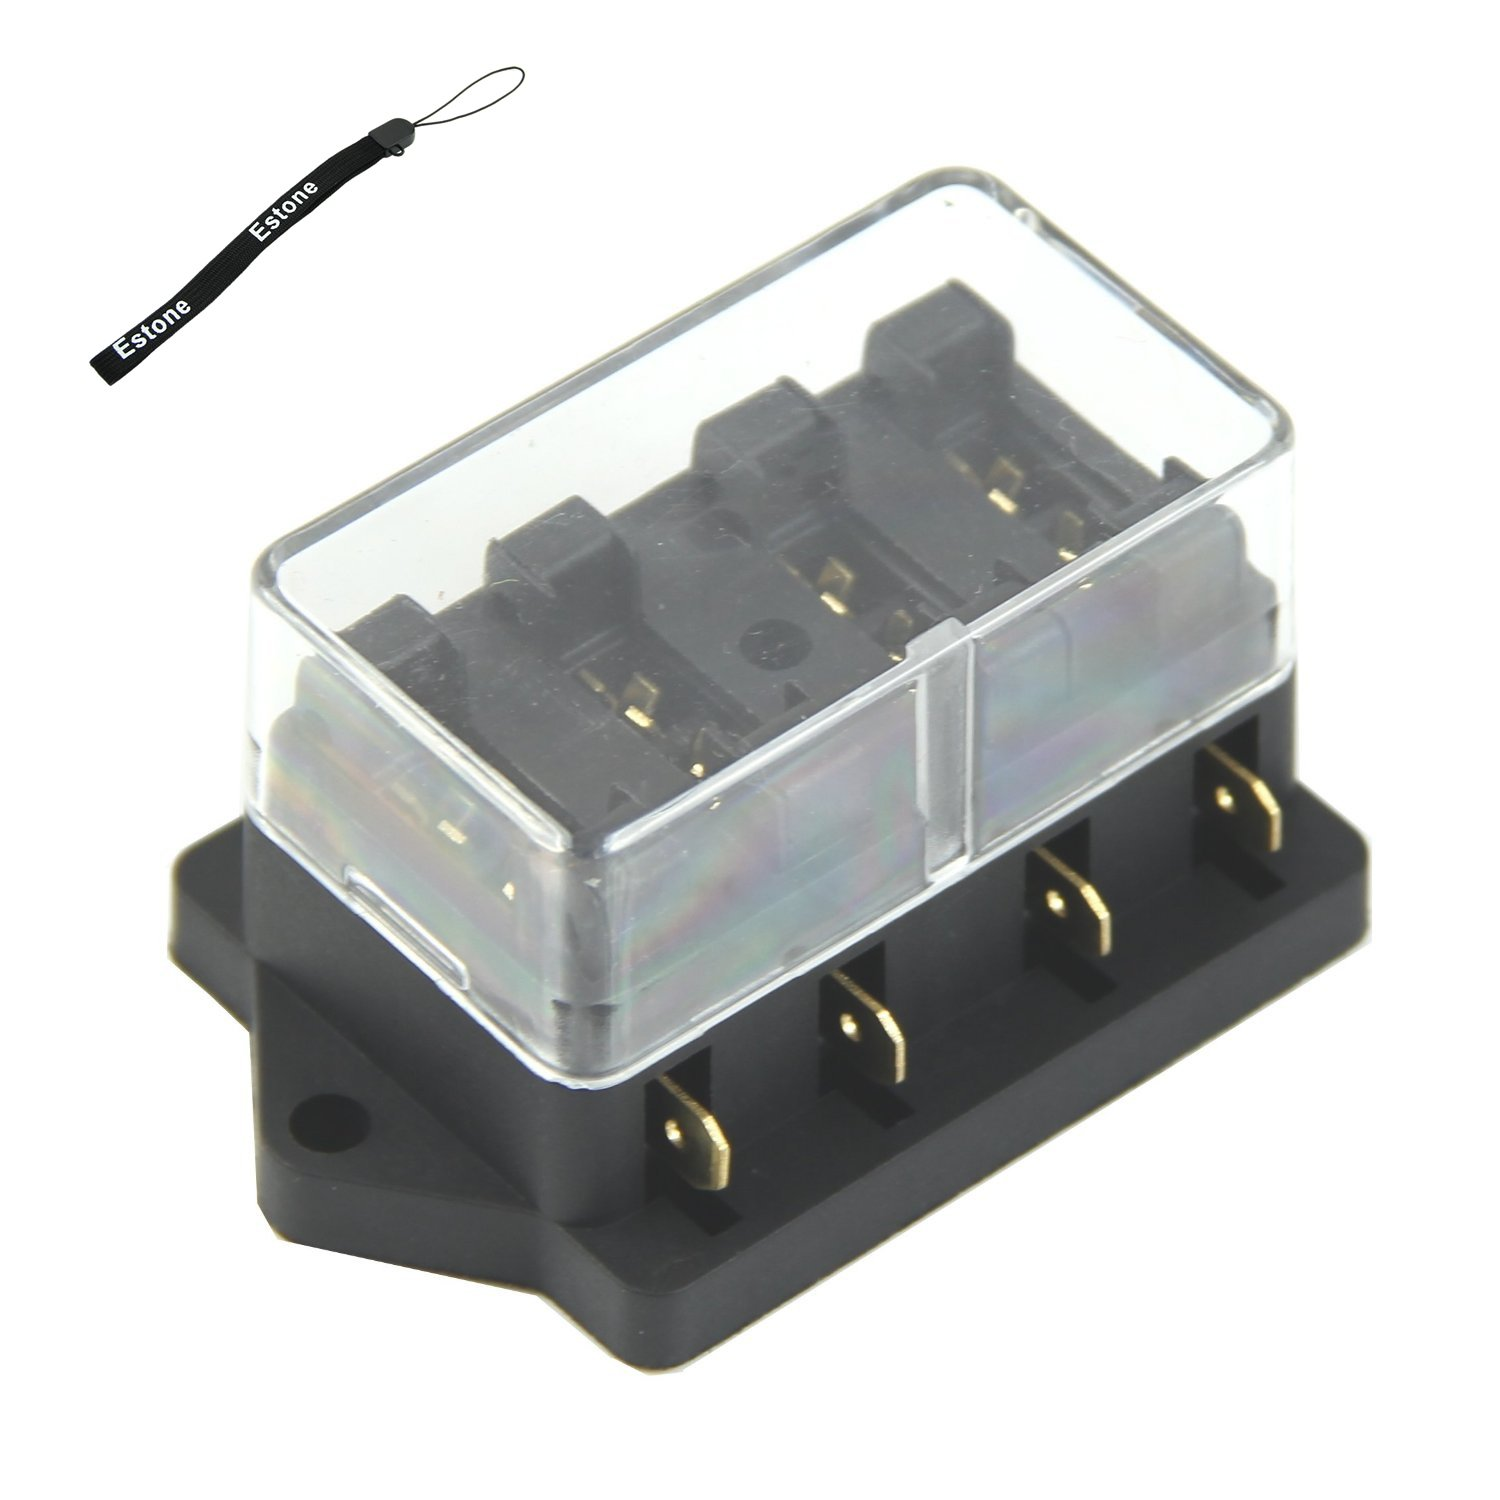 Estone 4 Way Fuse Box Block Holder Car Vehicle Circuits Circuit Automotive Blade Home Improvement